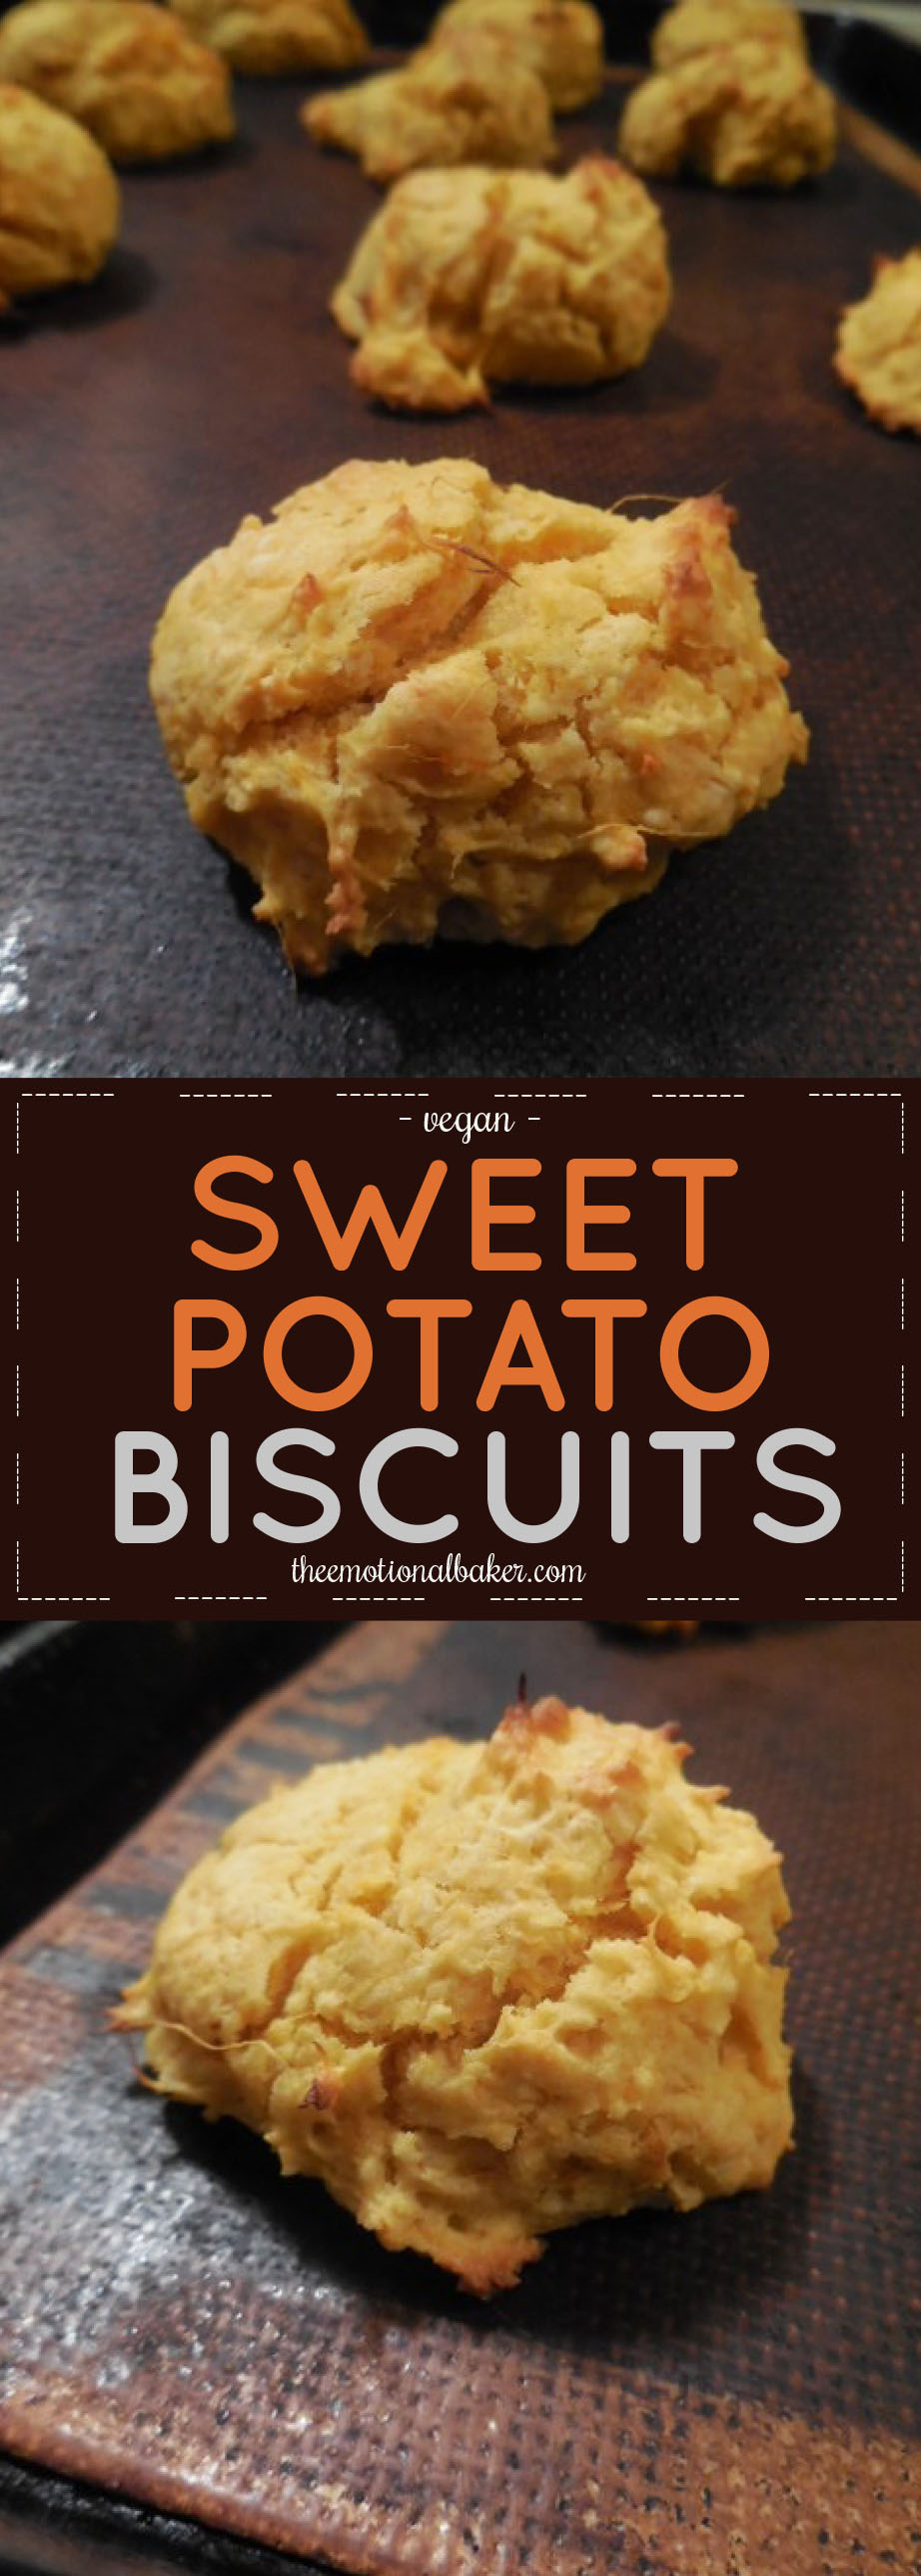 Easy, vegan sweet potato biscuit recipe perfect for pairing with soup or chili